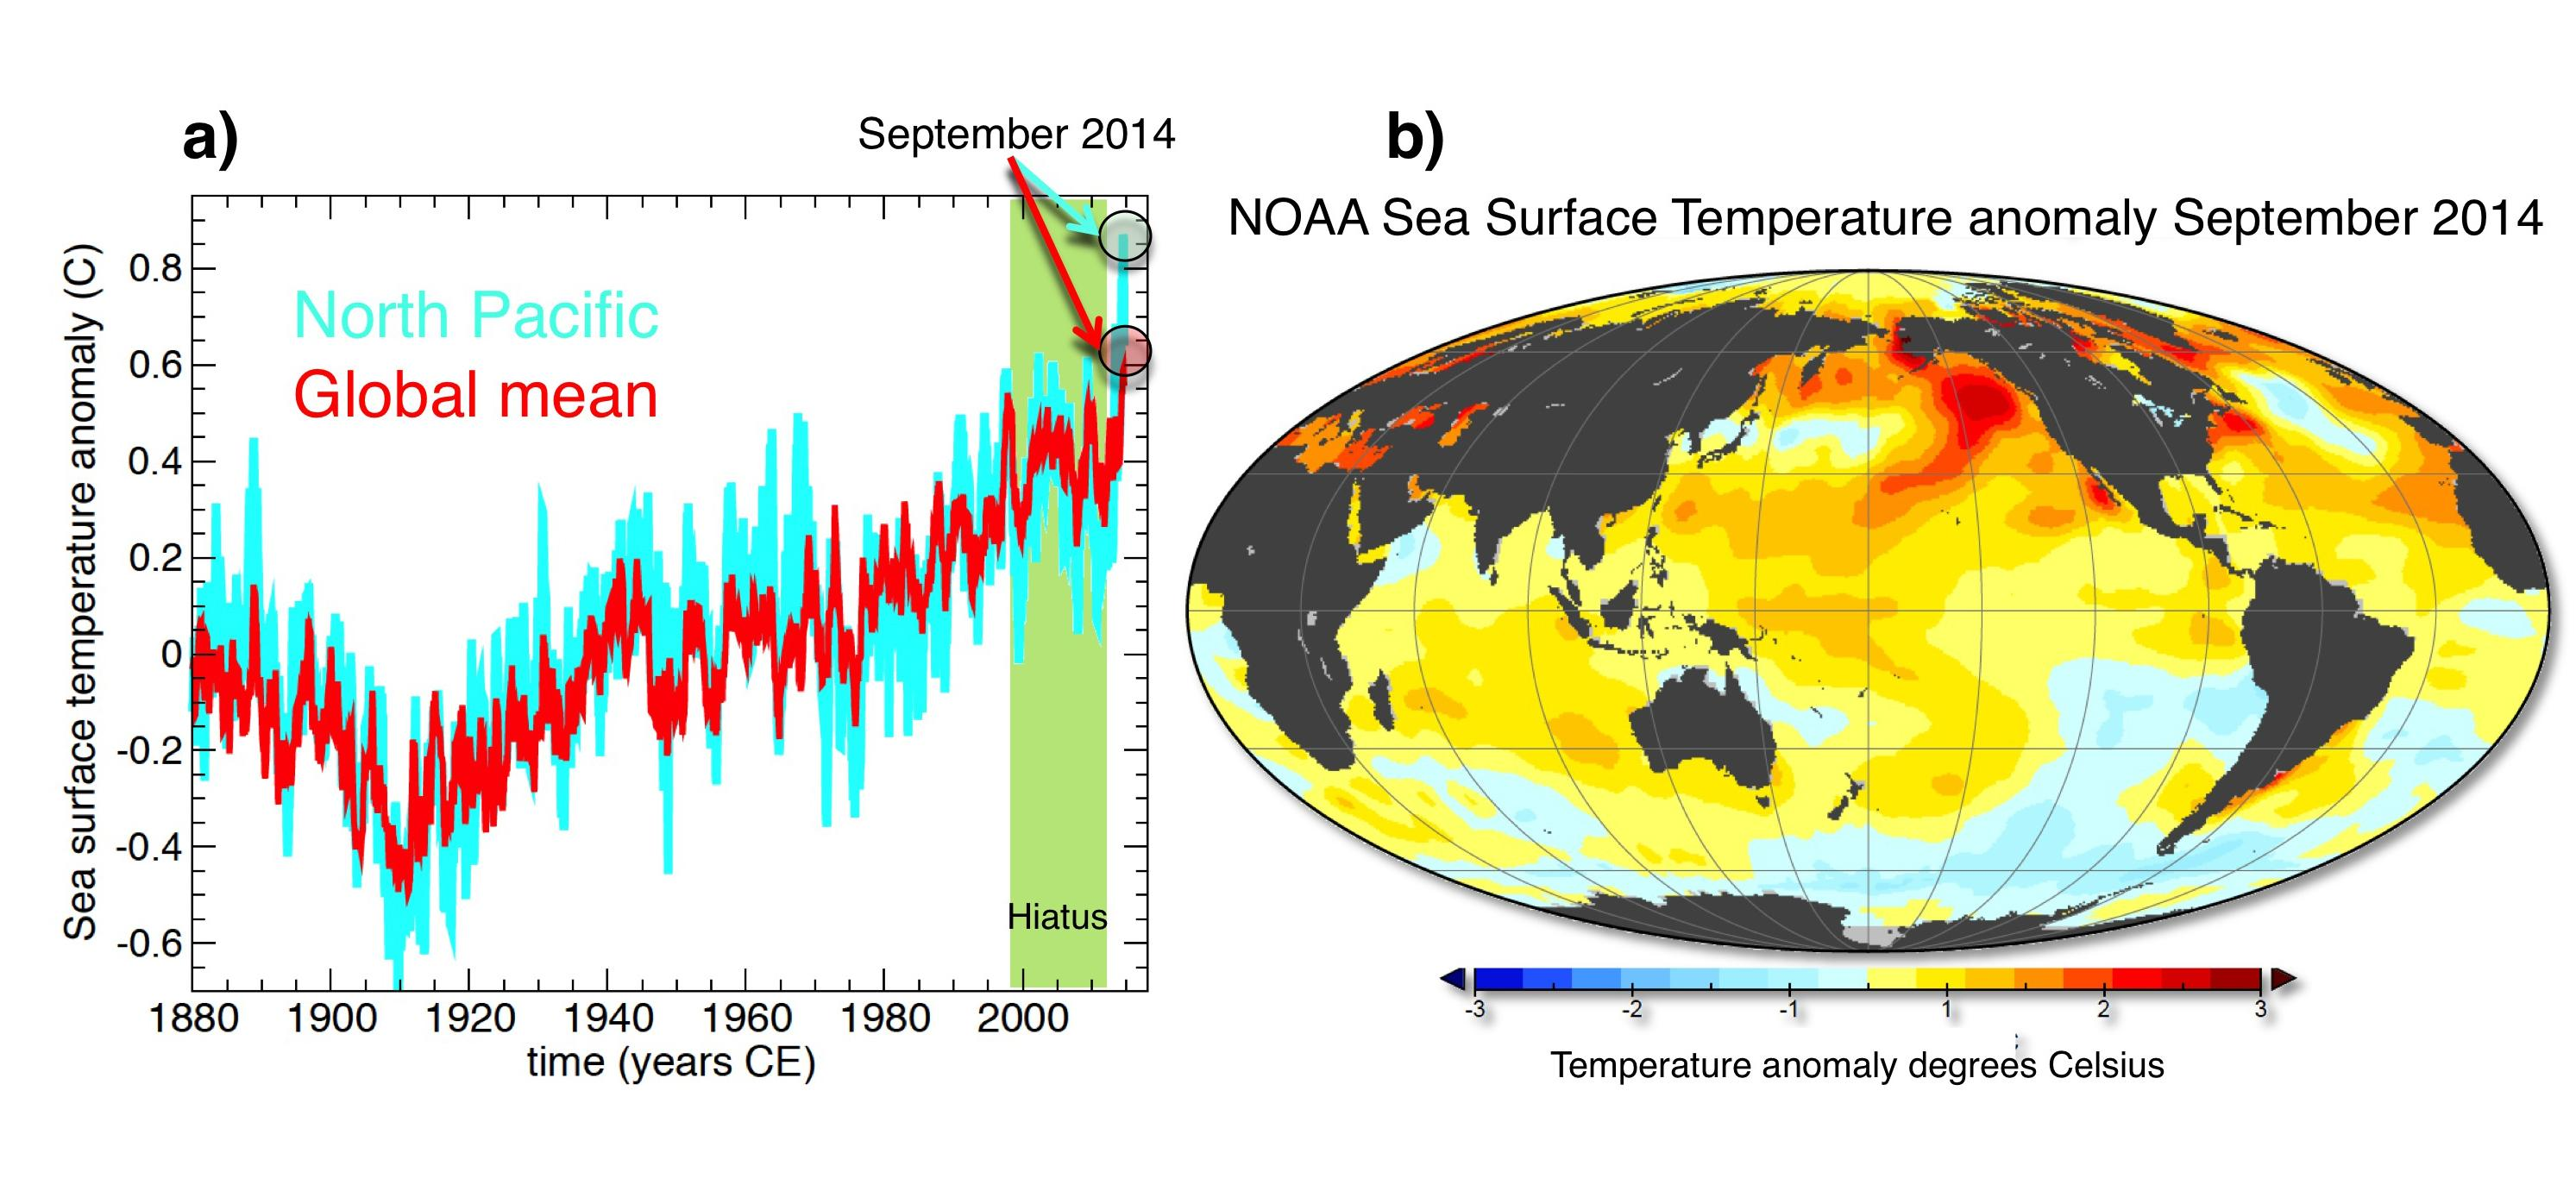 Mnoa ocean warming picks up speed hits warmest temperatures ever temperature departures in noaa datasets from a the 1854 2013 global mean b gumiabroncs Gallery